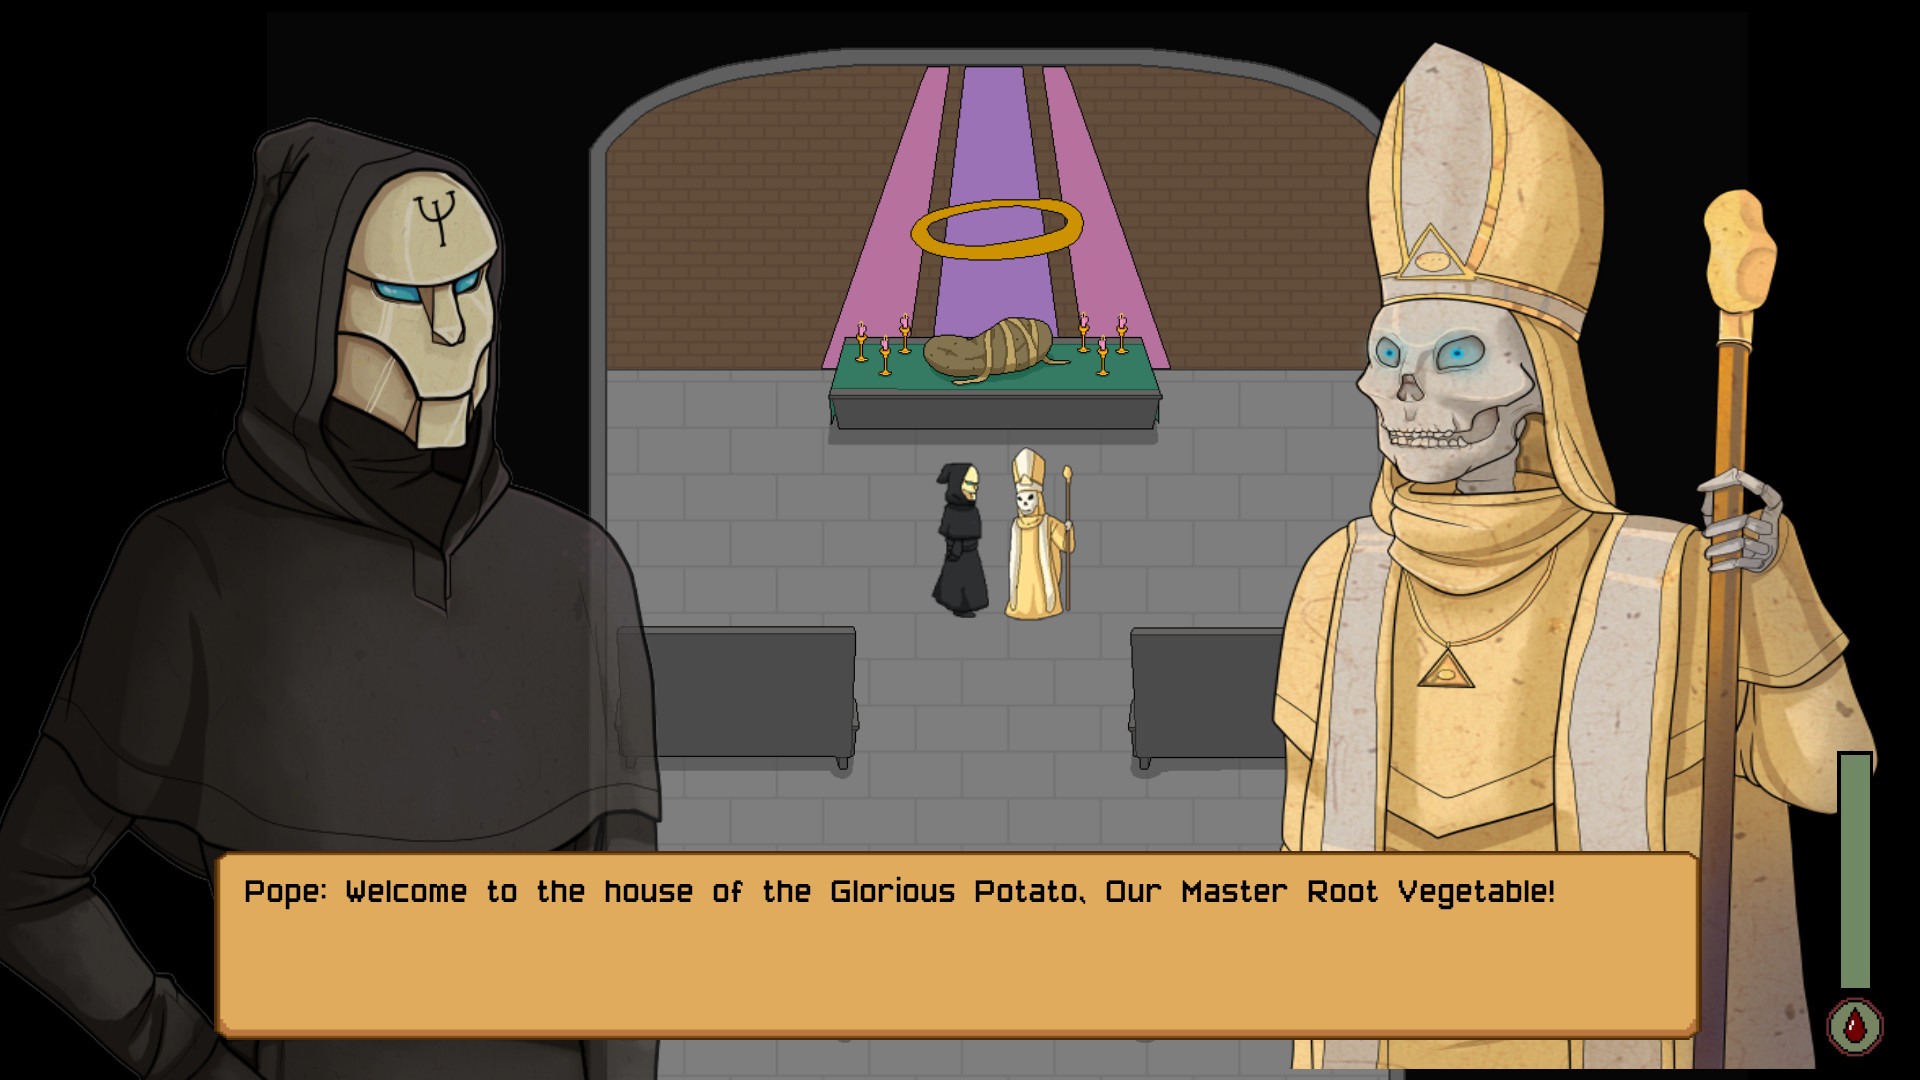 A masked and hooded figure speaks to a skeleton dressed like a pope. The pair stand in front of a giant bandaged potato, which has a halo and is surrounded by candle sticks. A dialogue overlay says, 'Pope: Welcome to the house of the Glorious Potato, our master root vegetable!'